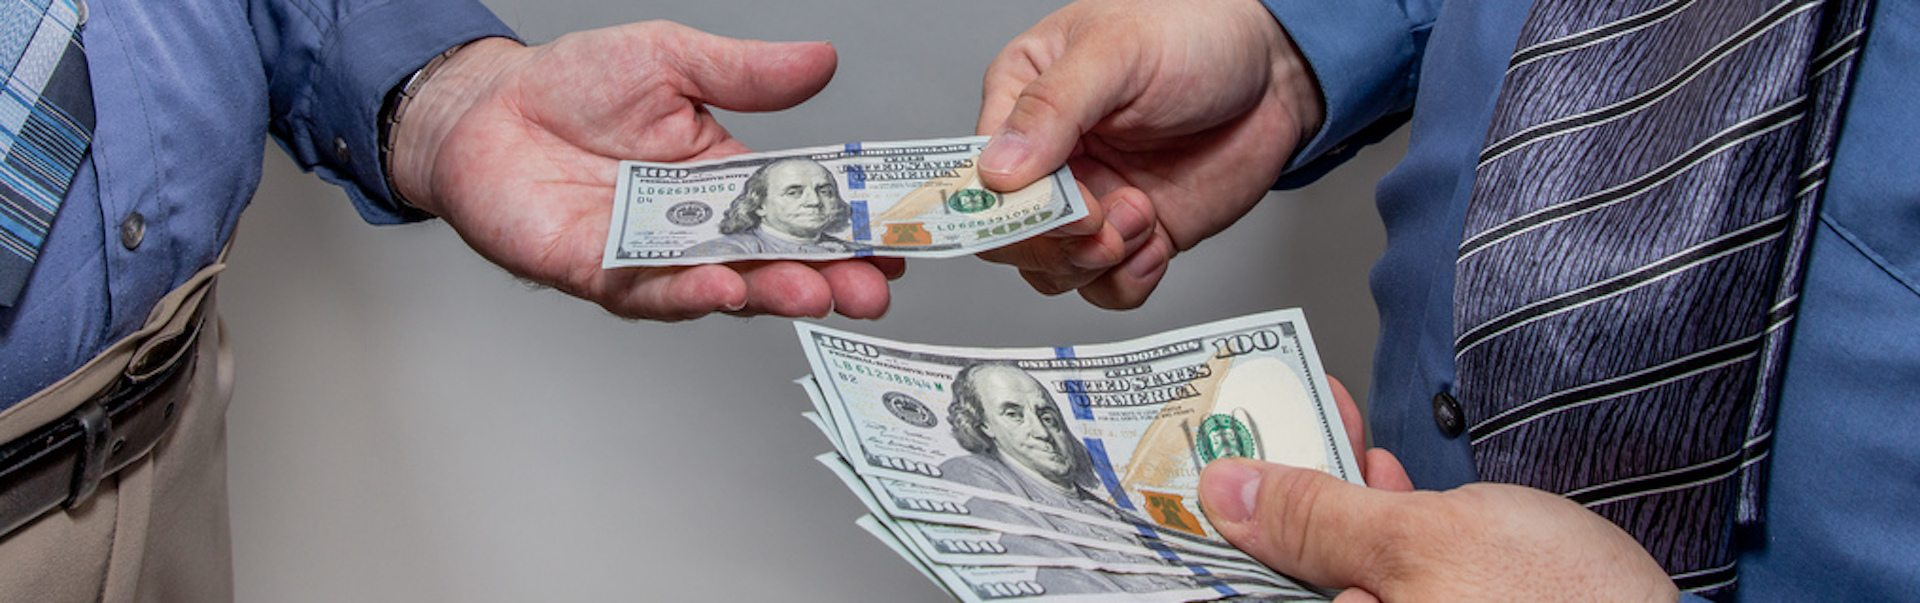 Money-Saving Tips for HVAC, Plumbing, Gas, and Electric Prices